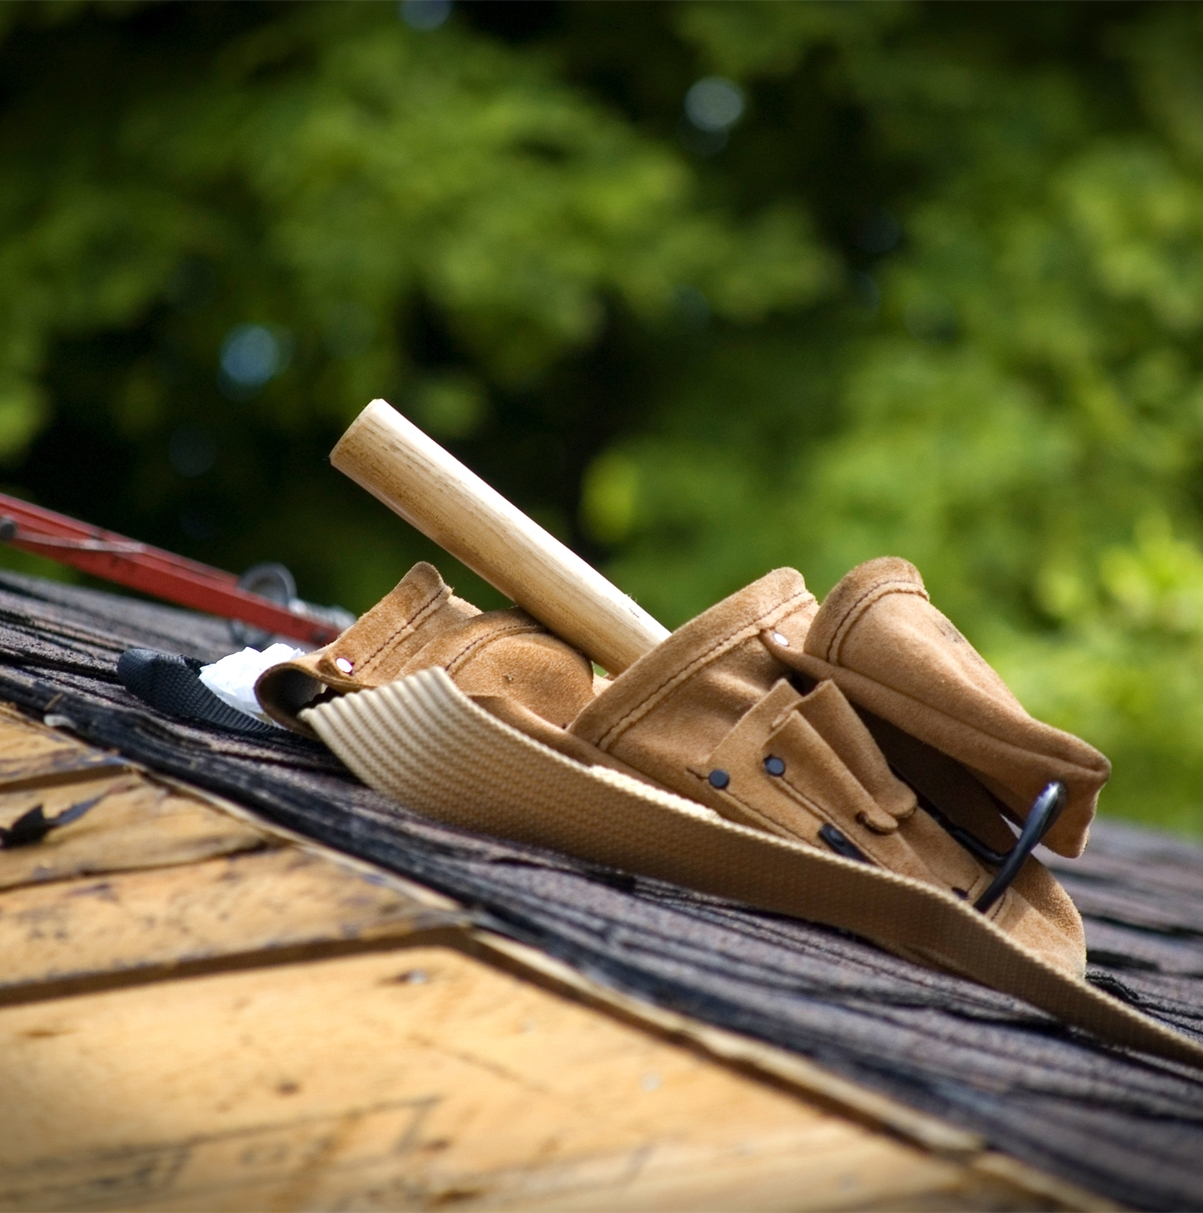 Top Ten House Problems Roof issues leading to leaks causing water damage or even a fire!